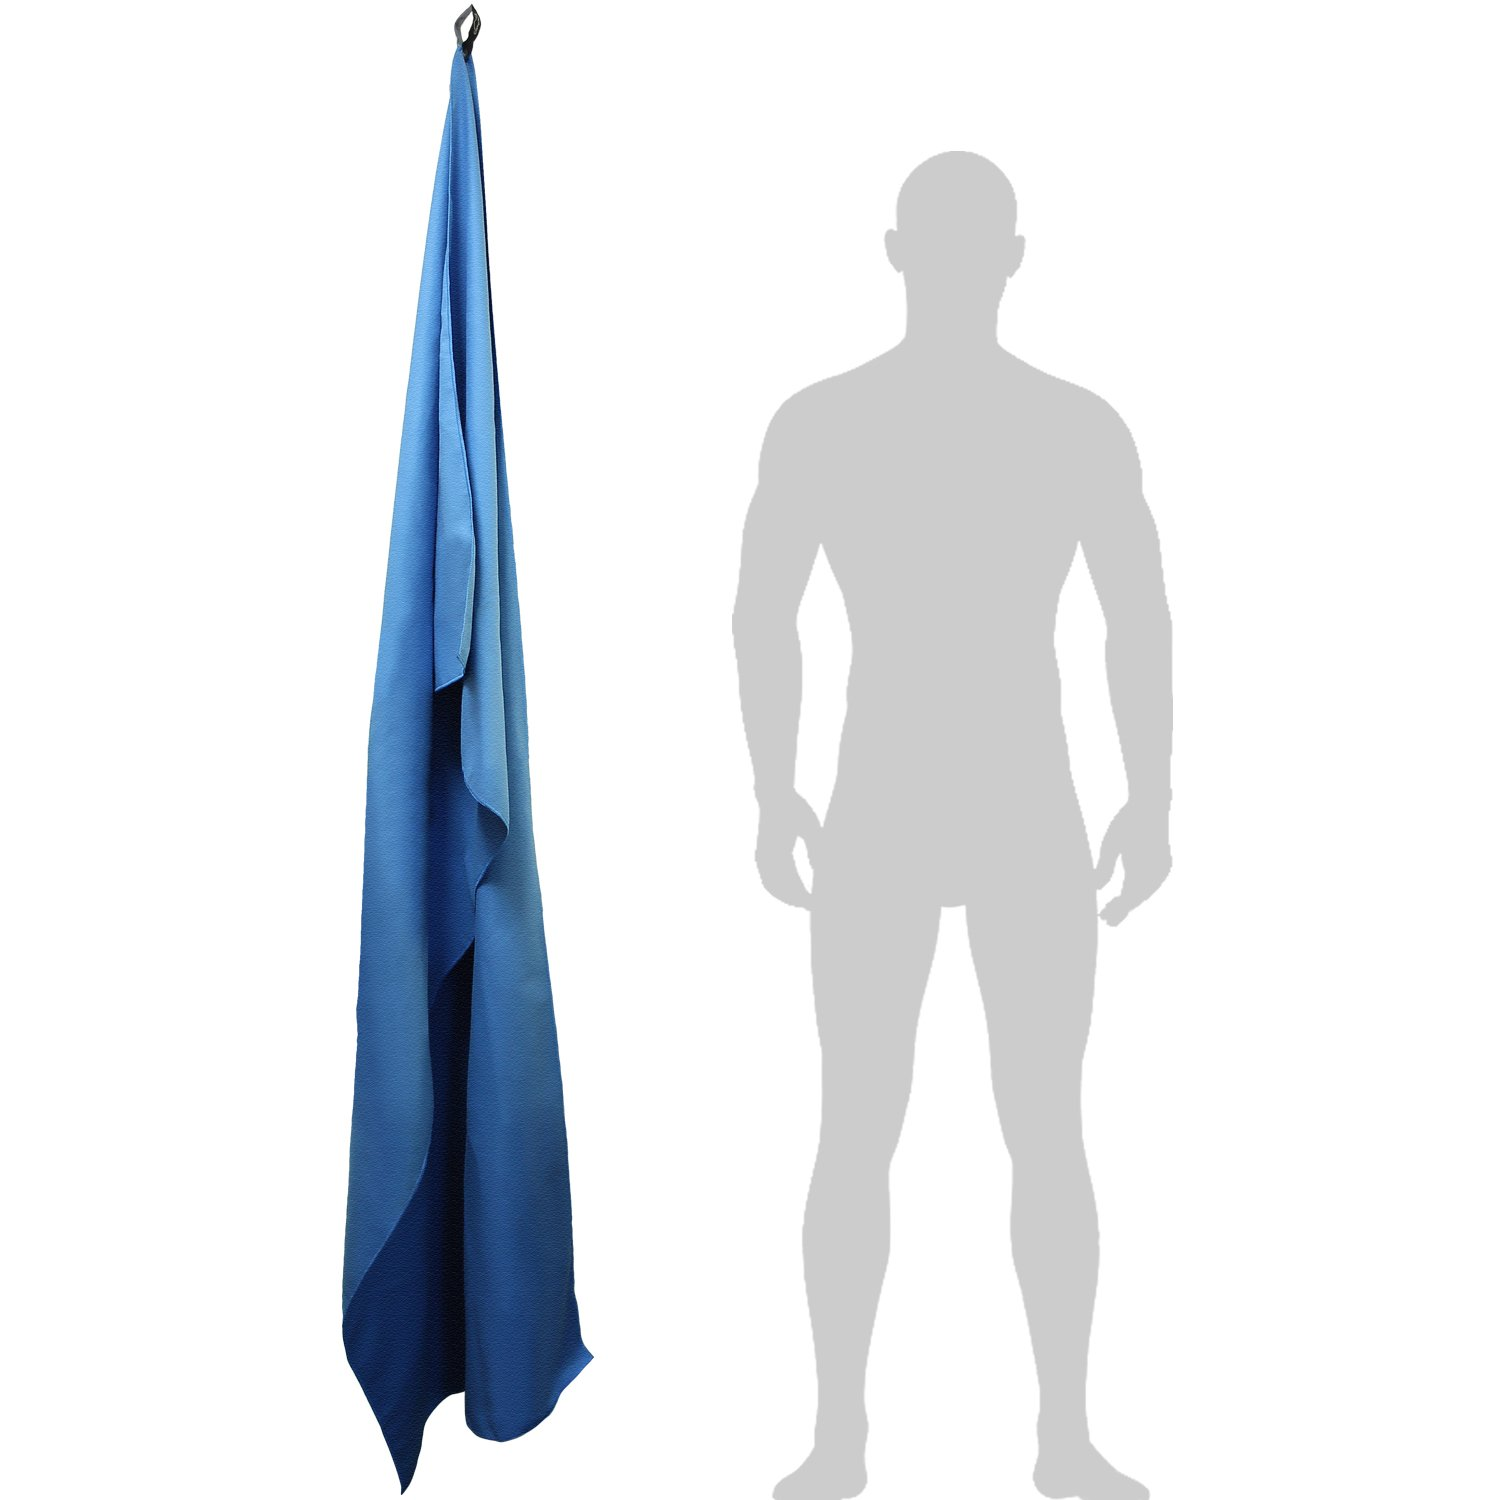 Camping and Much More Lightweight and Compact Quick Dry Microfibre Travel Towel for Sports Swimming 180x80cm Gym CampTeck Large Yoga Beach